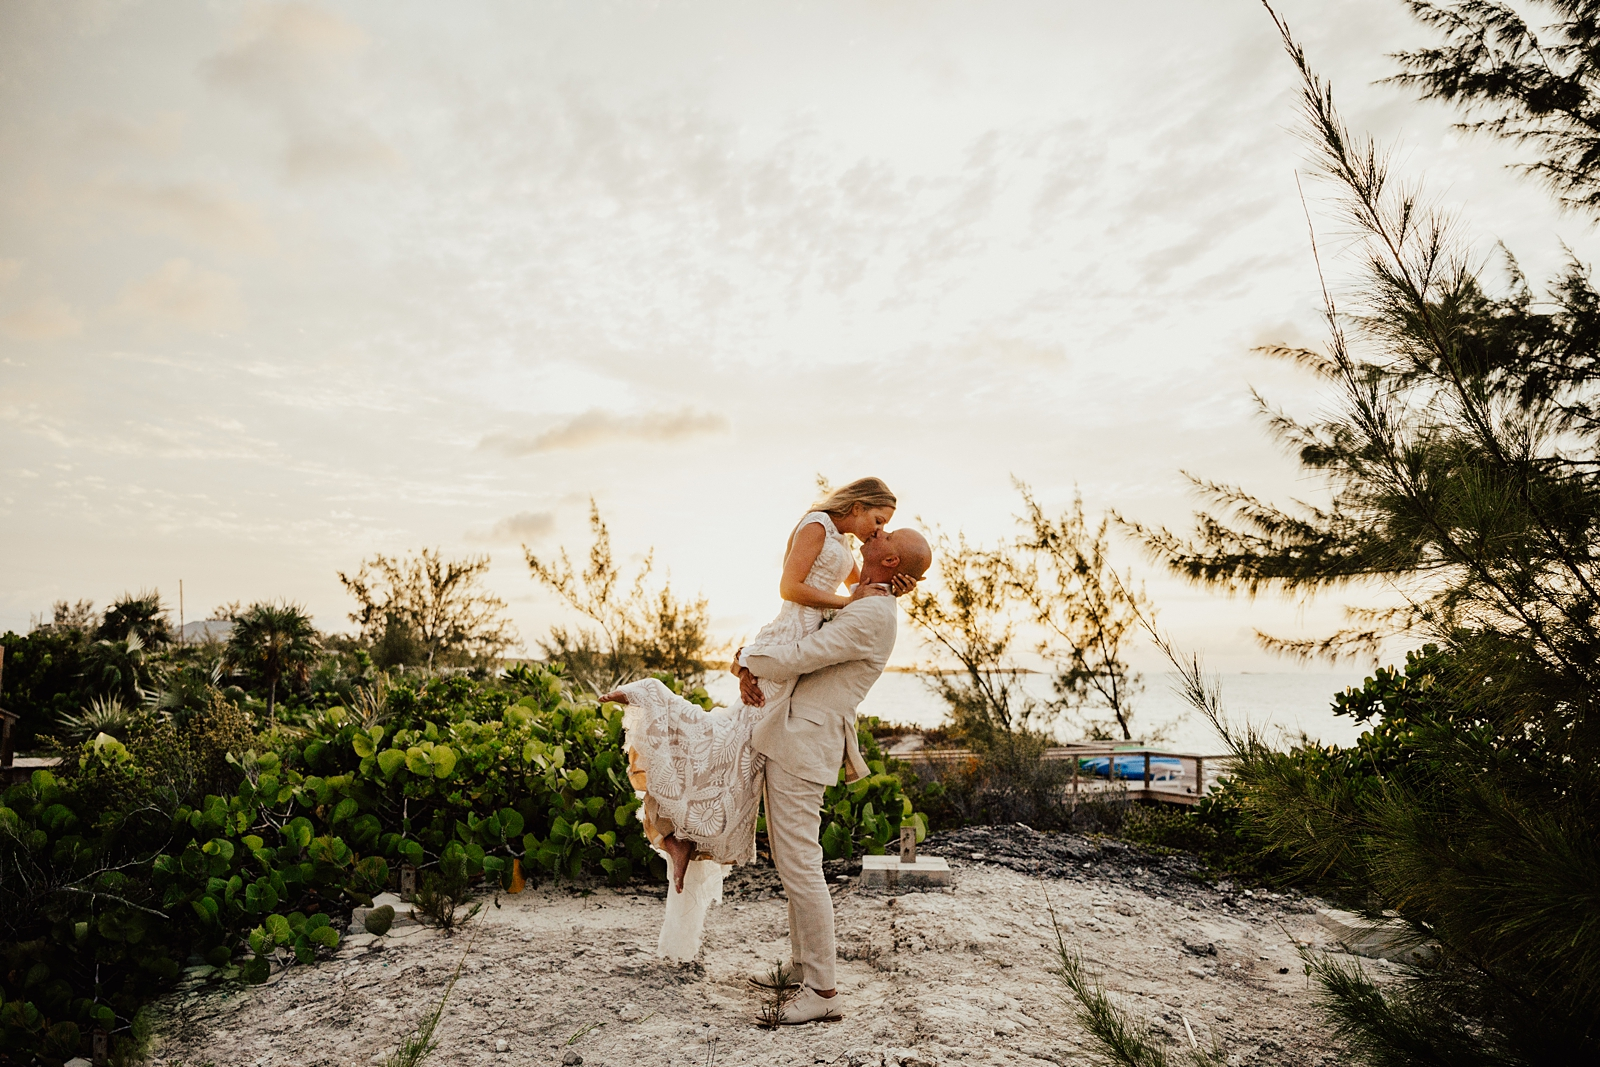 Jenni & Andrew Intimate Beach Destination Wedding in Little Exuma, Bahamas_0525.jpg